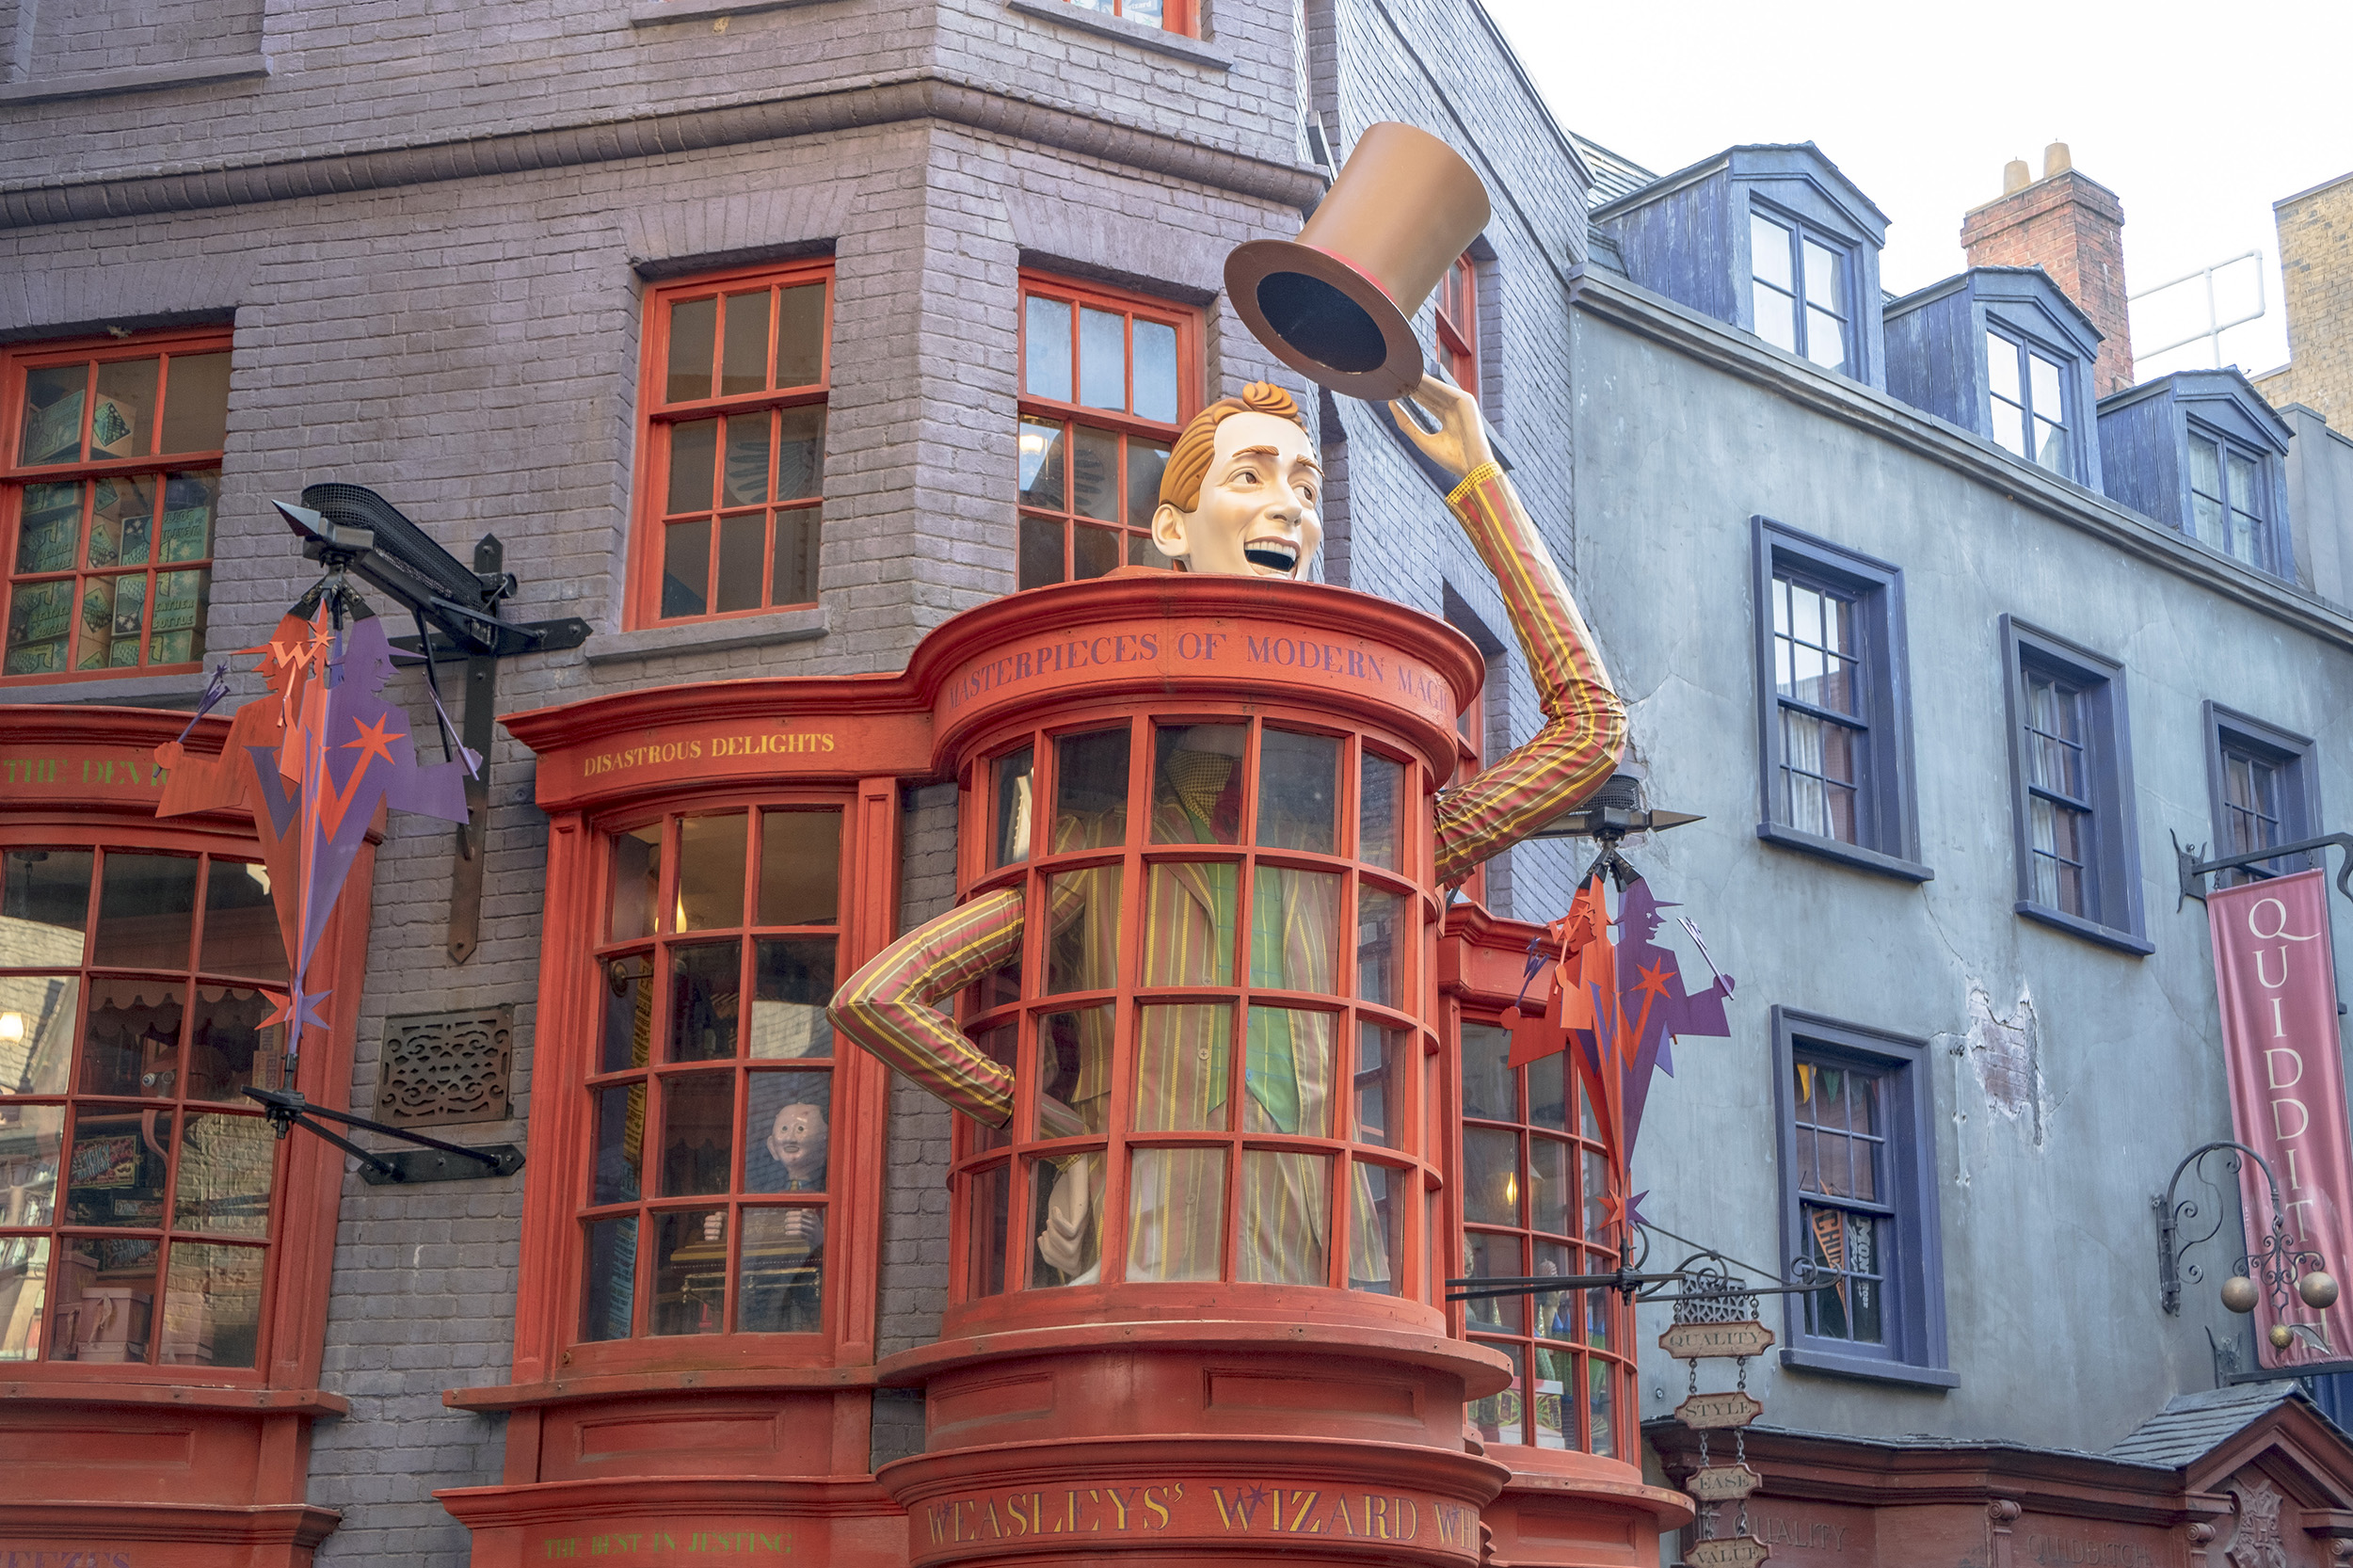 Weasleys Wizard Wheezes Diagon Alley The Wizarding World of Harry Potter Orlando